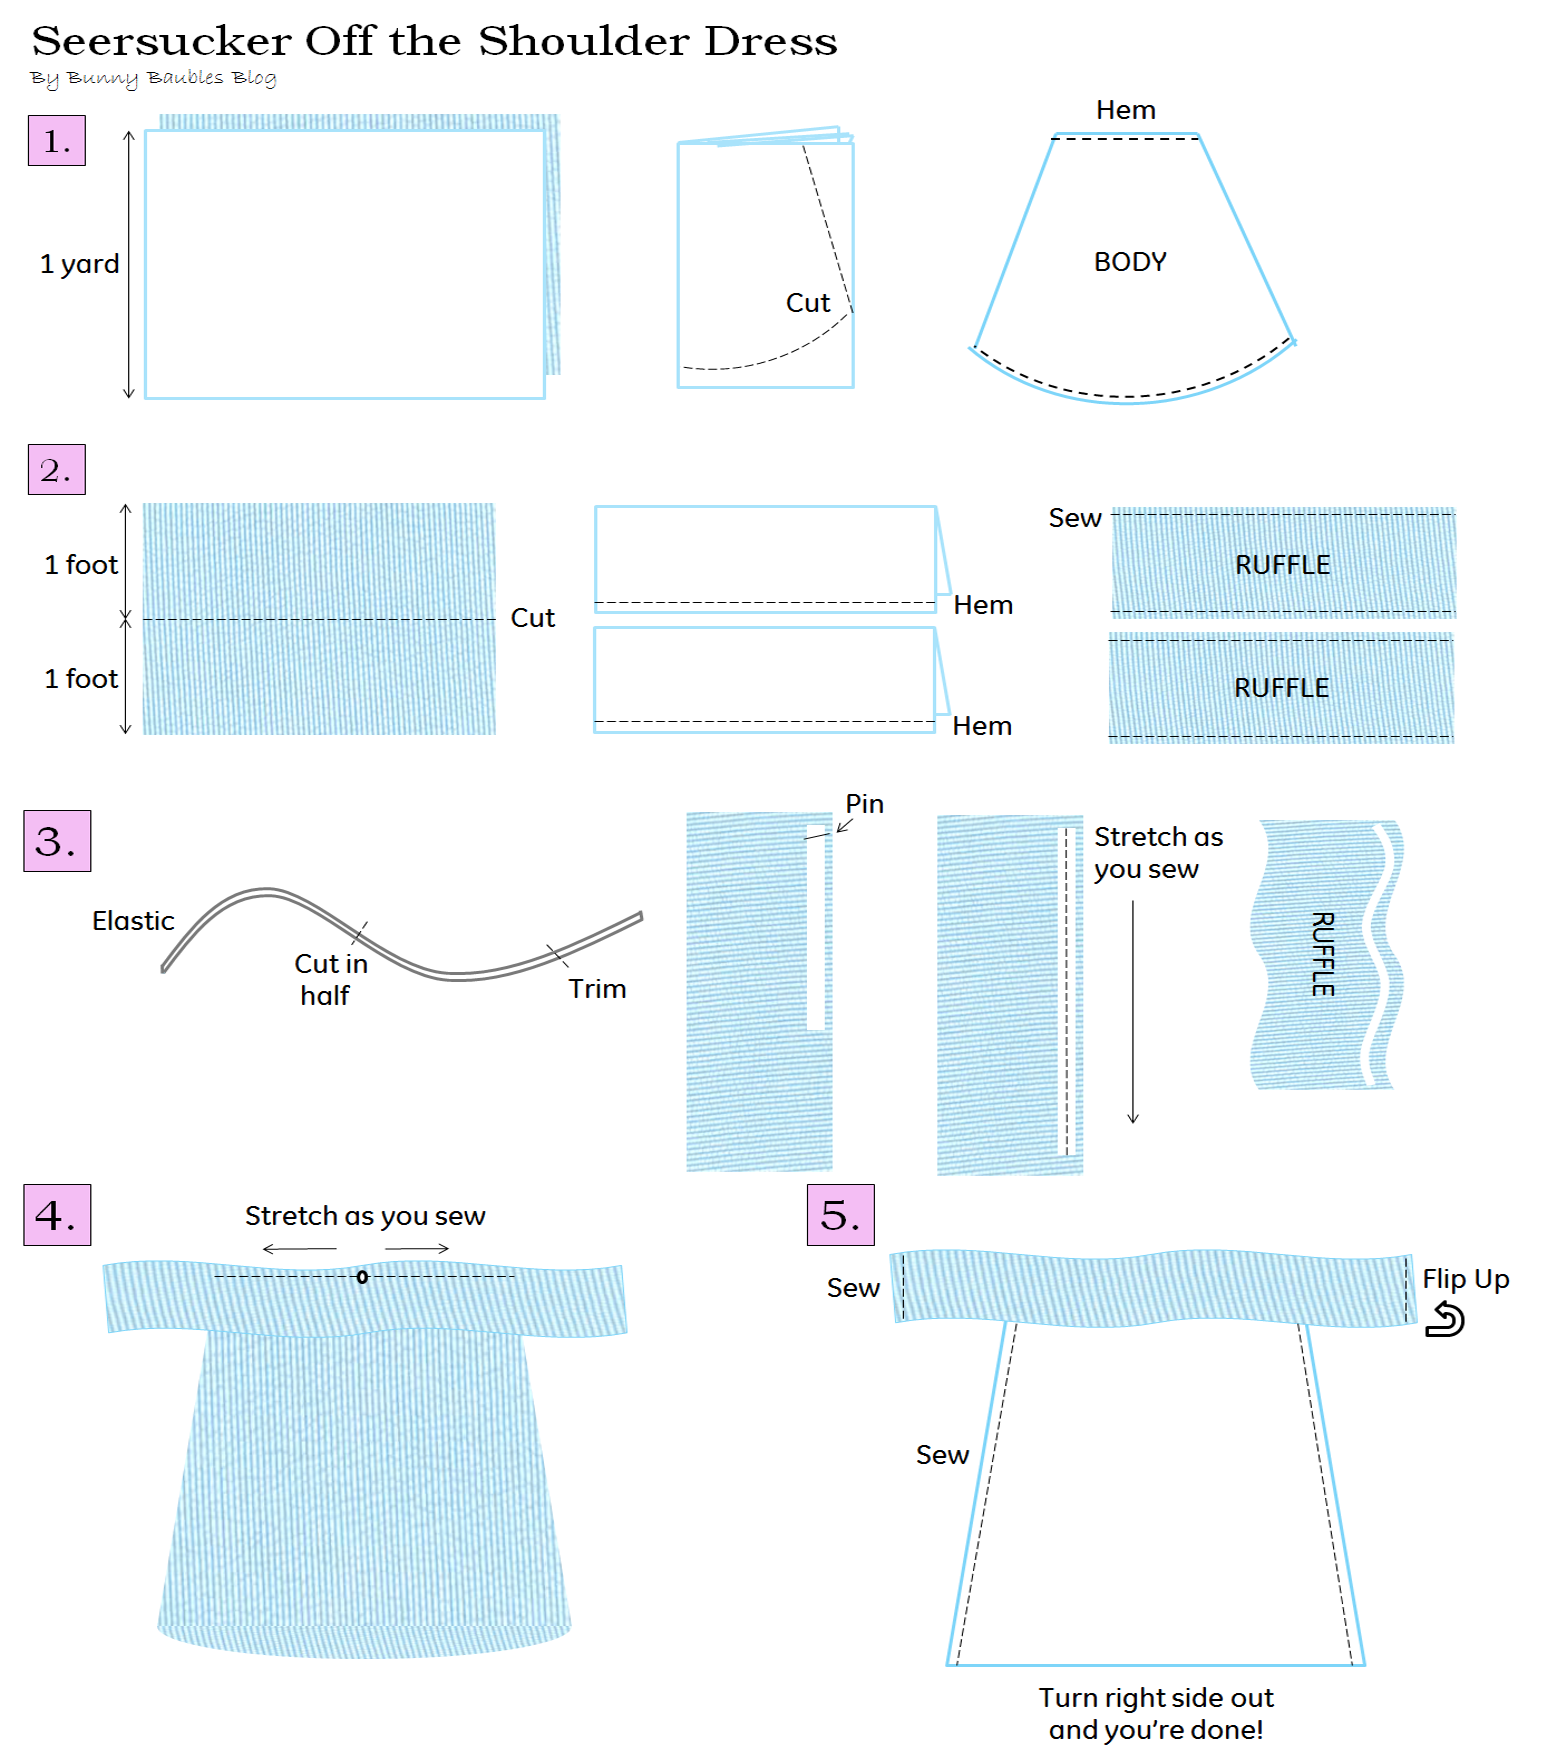 ... Off the Shoulder Summer Dress Sewing Tutorial – Bunny Baubles